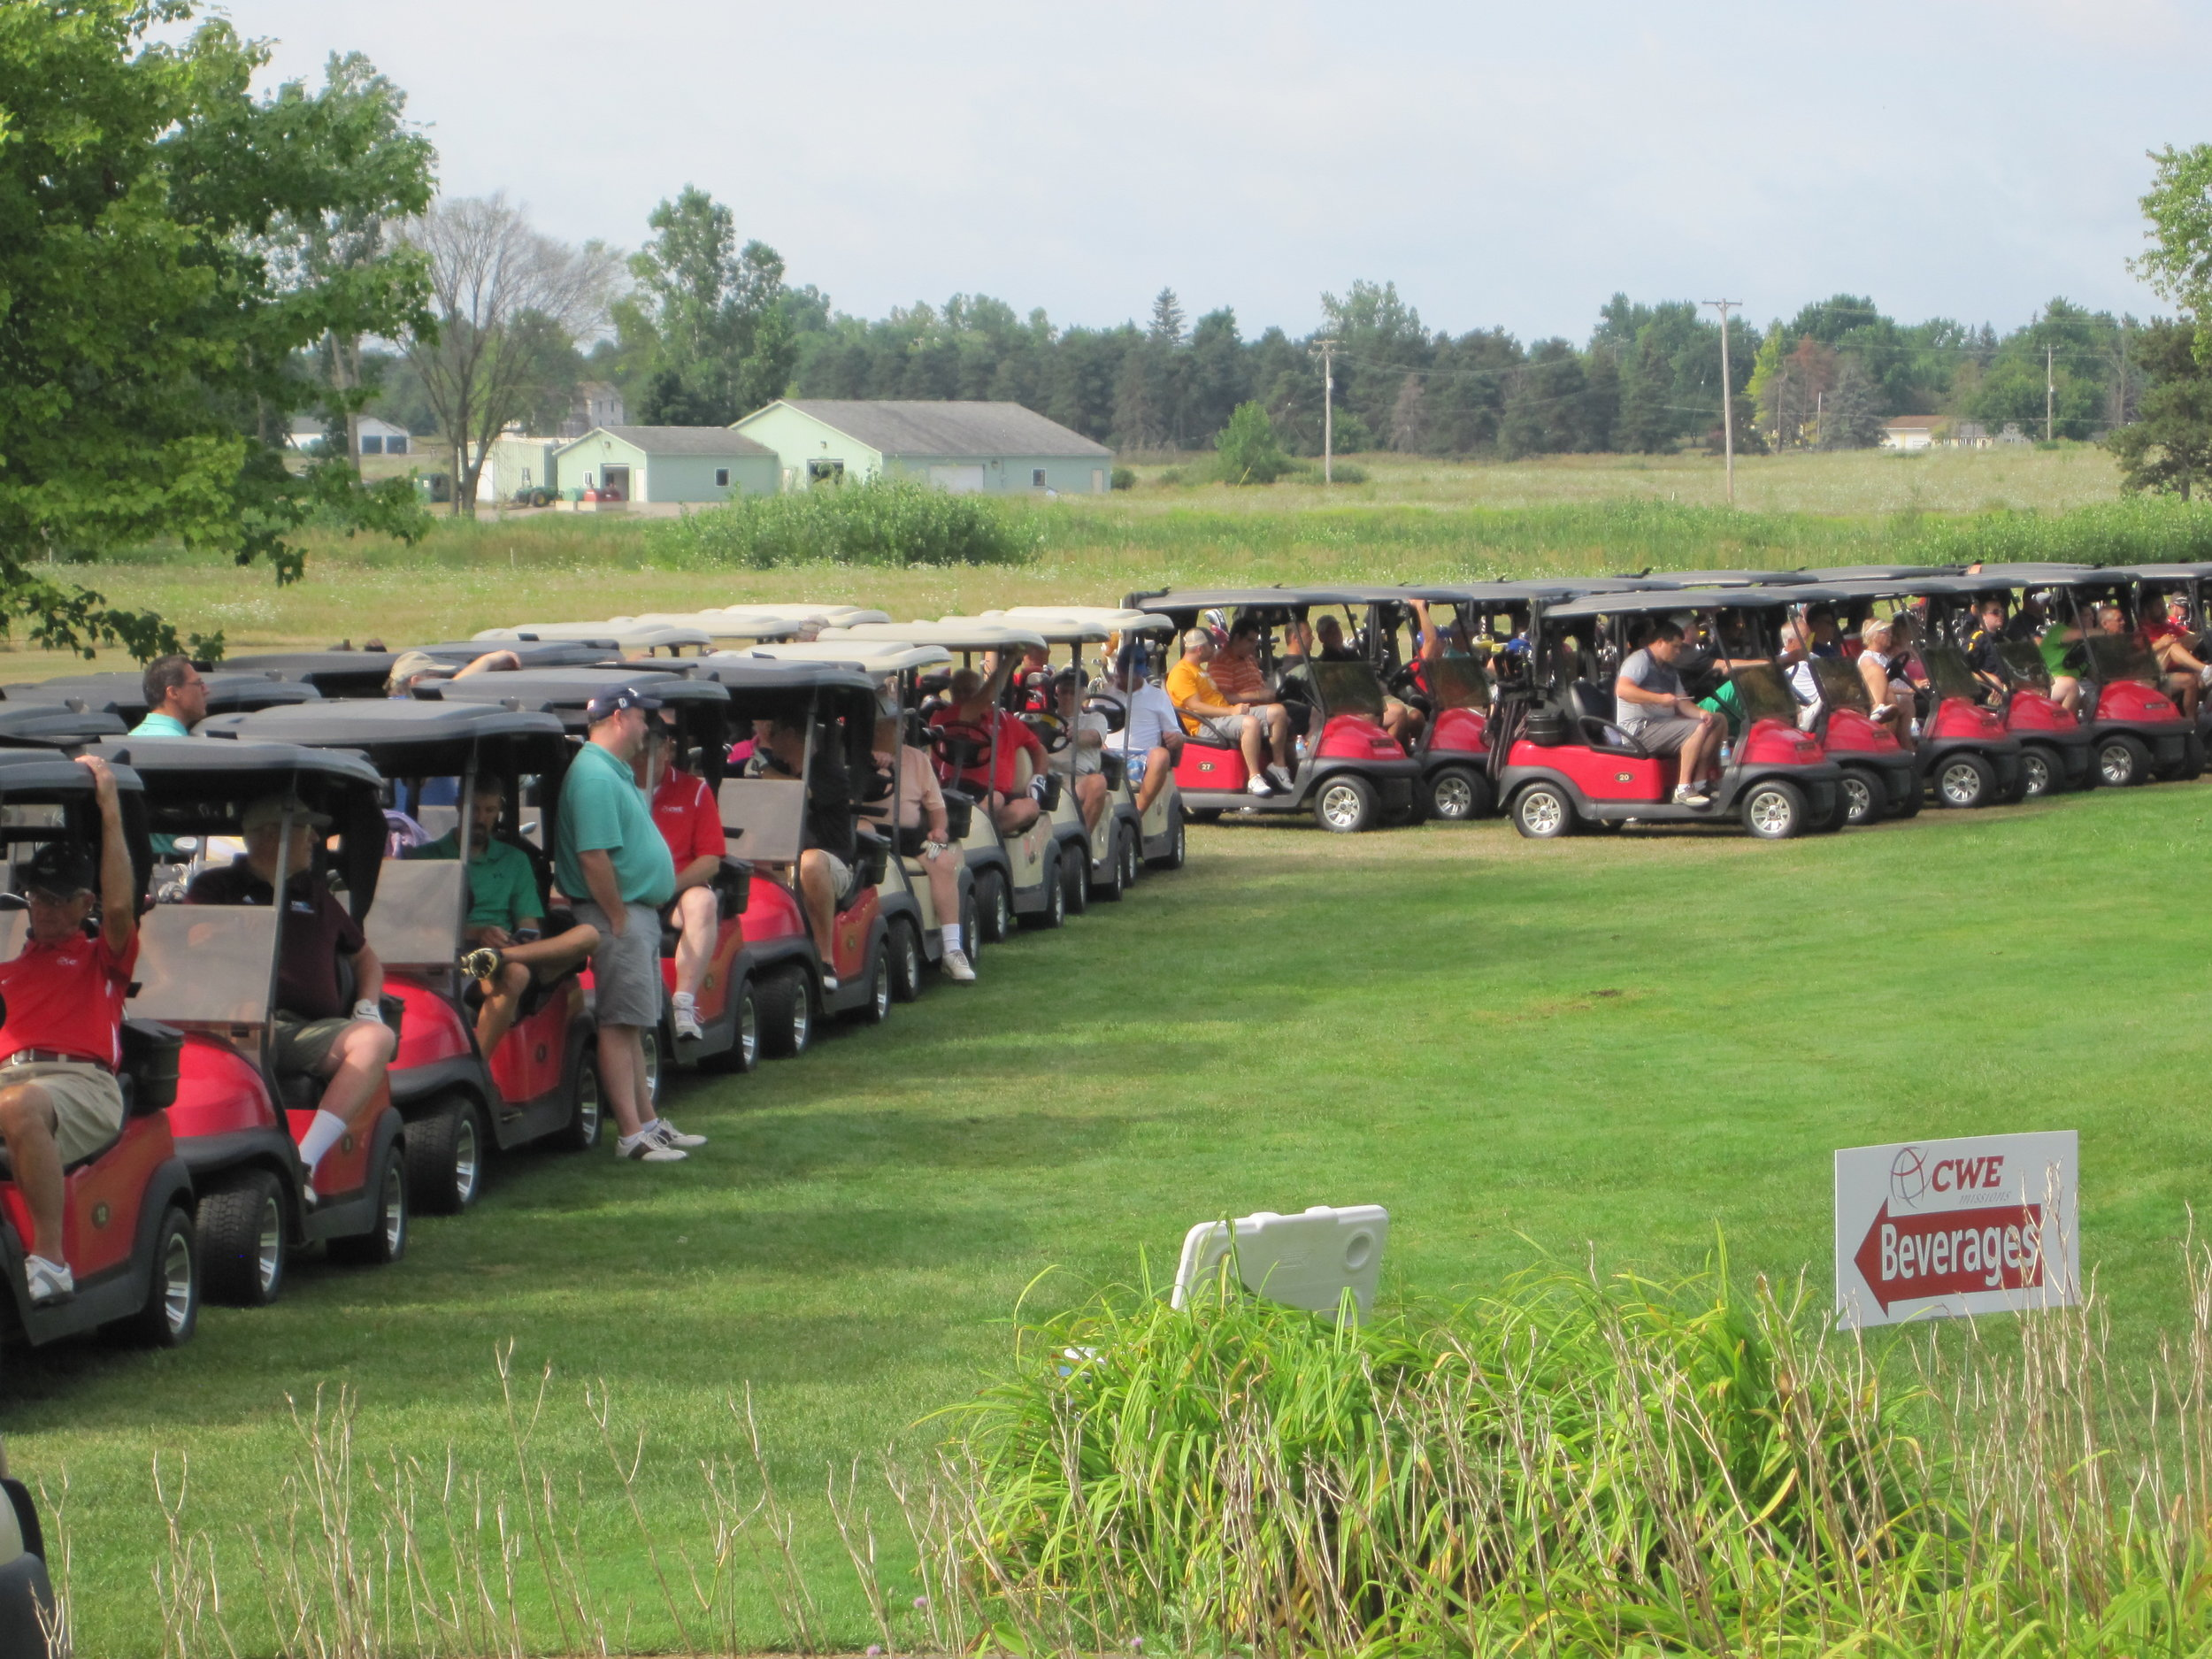 CWE Michigan Fundraiser golfers in carts